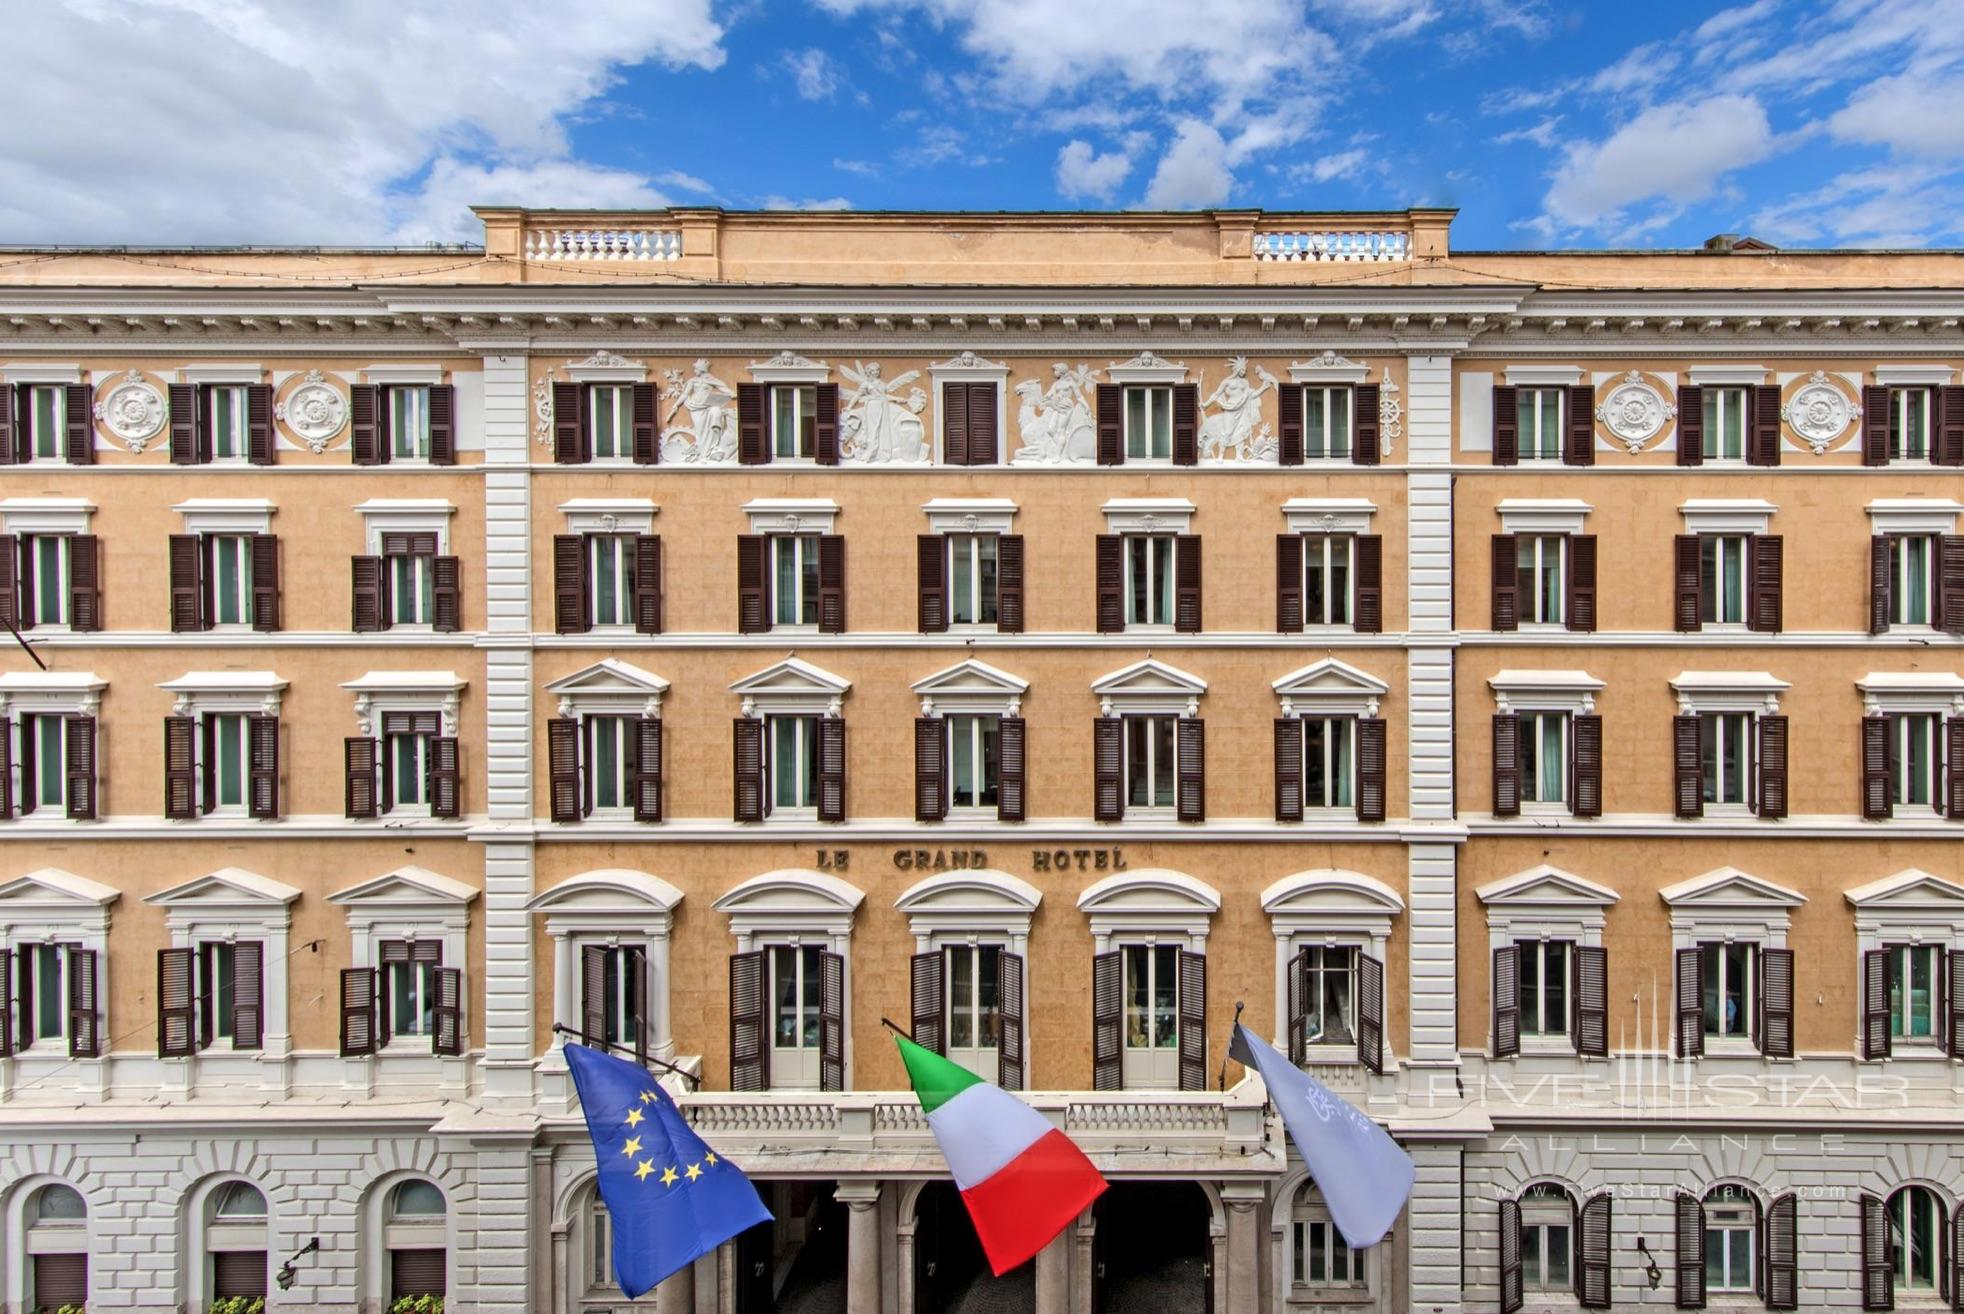 The St. Regis Grand Rome